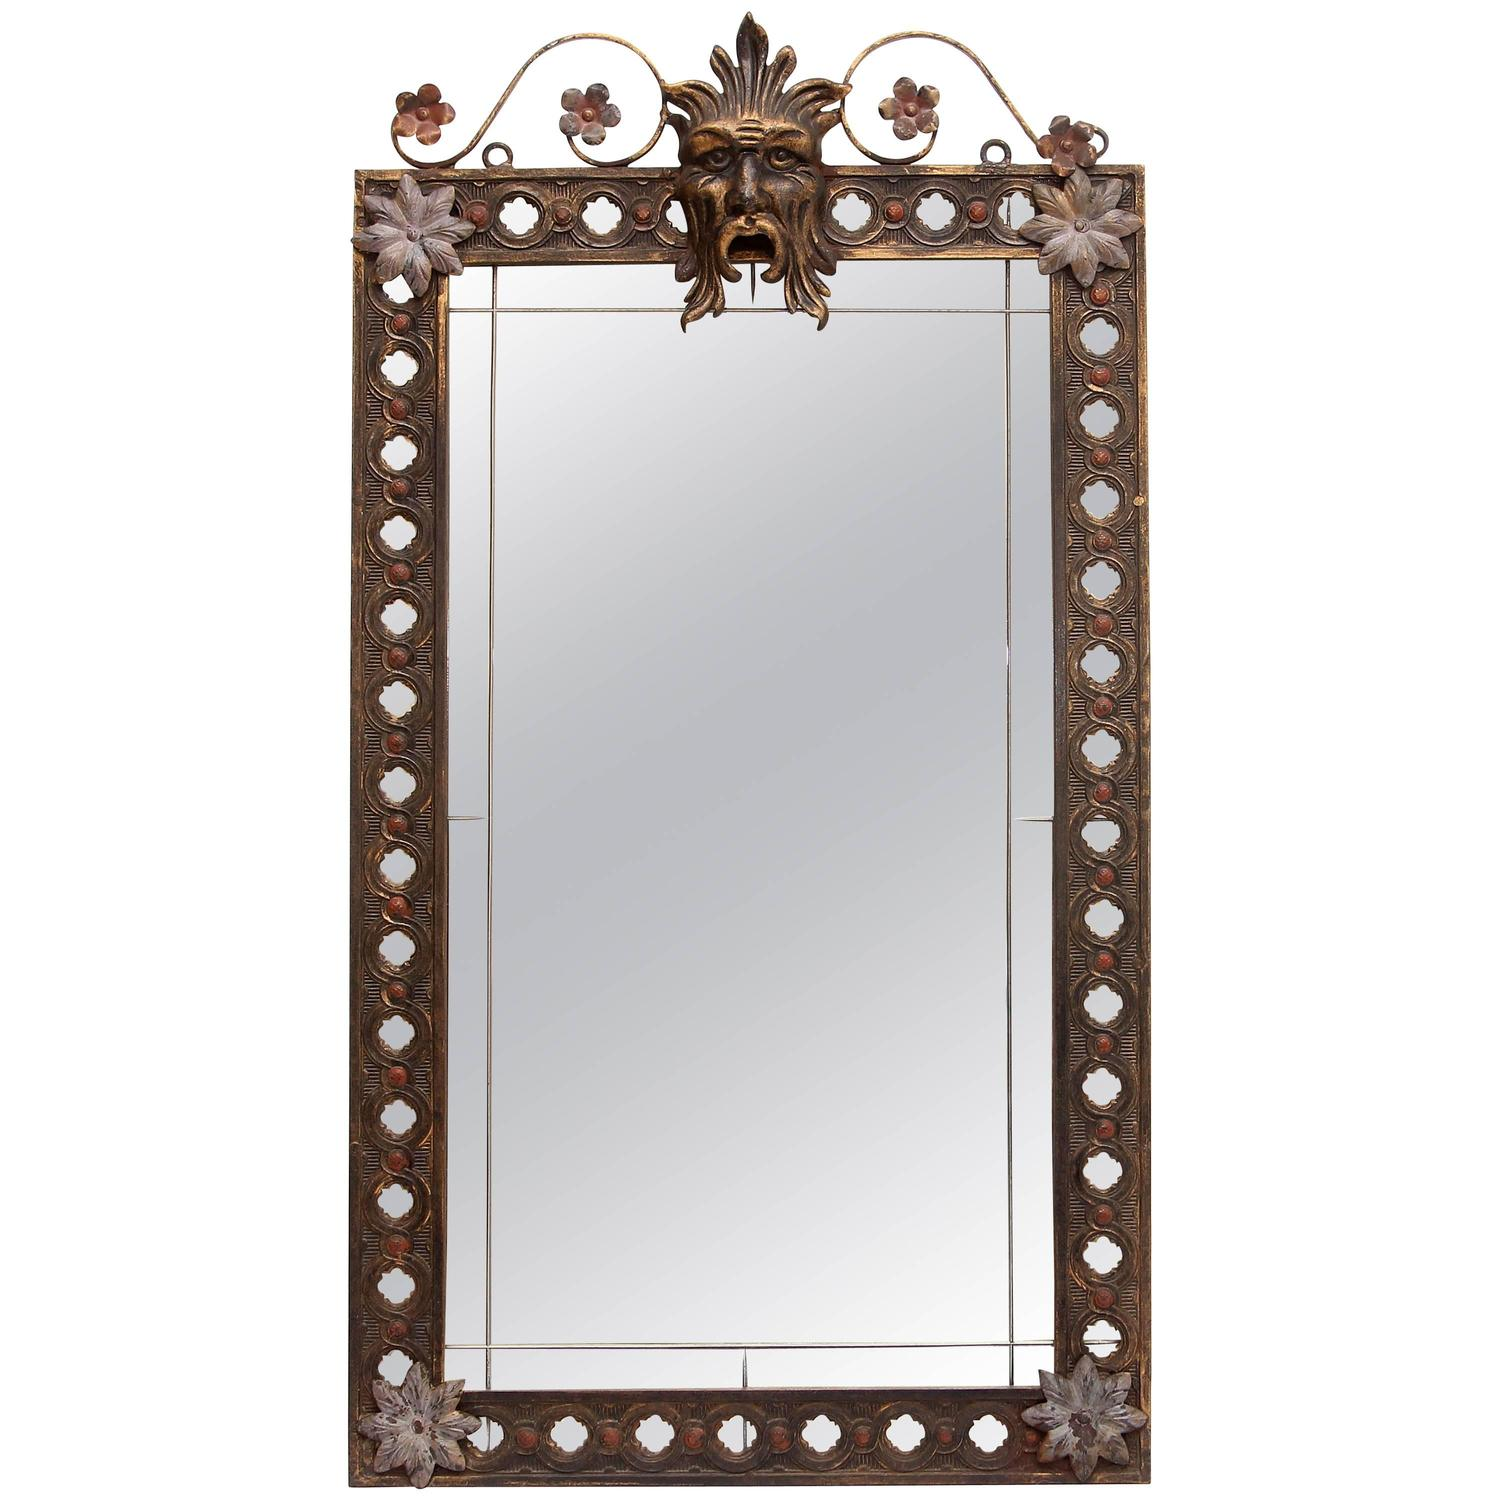 Antique wrought iron mirror for sale at 1stdibs for Wrought iron mirror